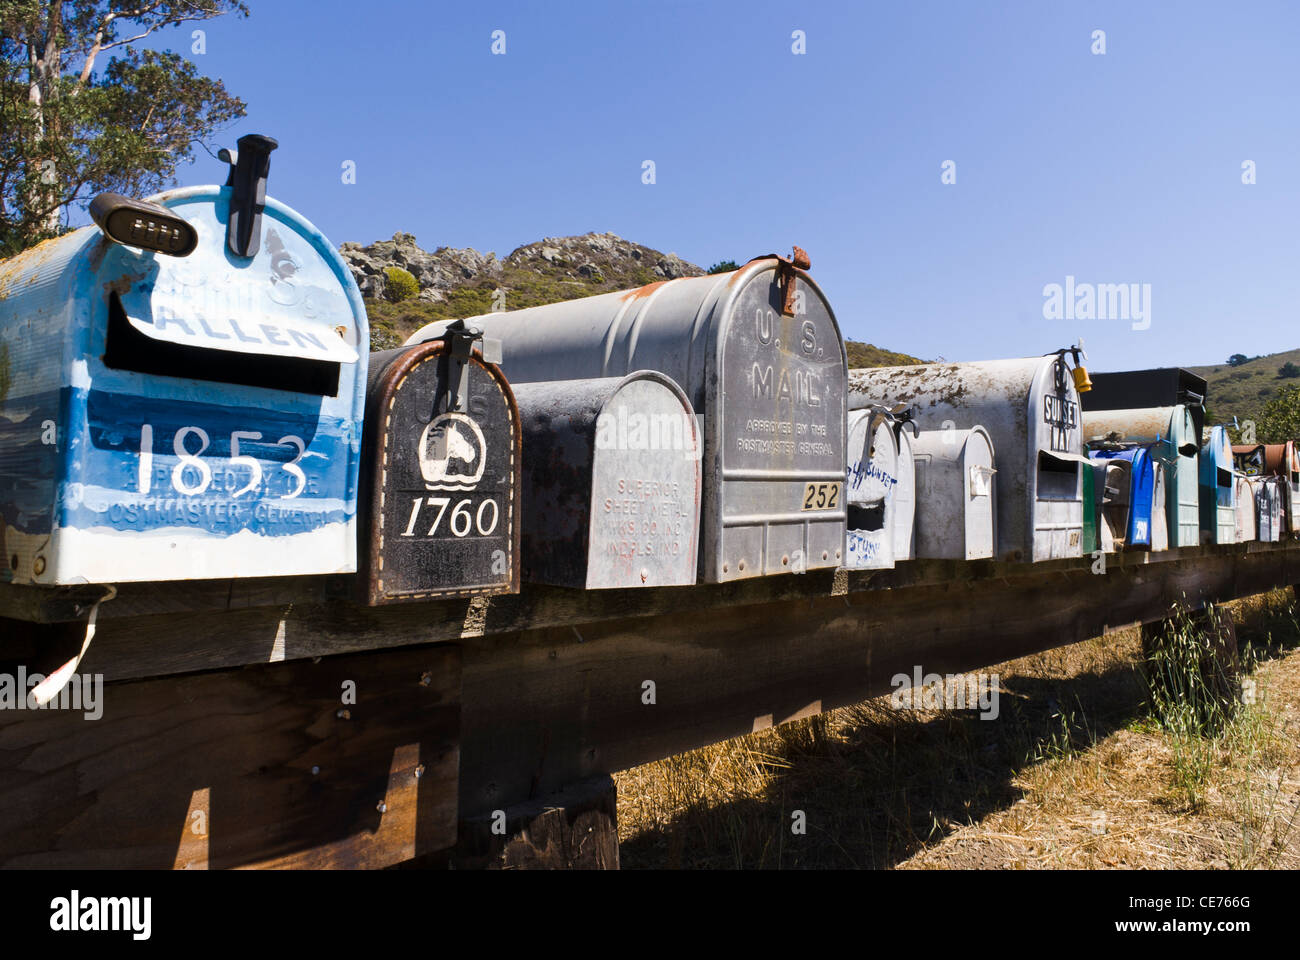 Mailboxes. Muir Beach, California, USA. - Stock Image